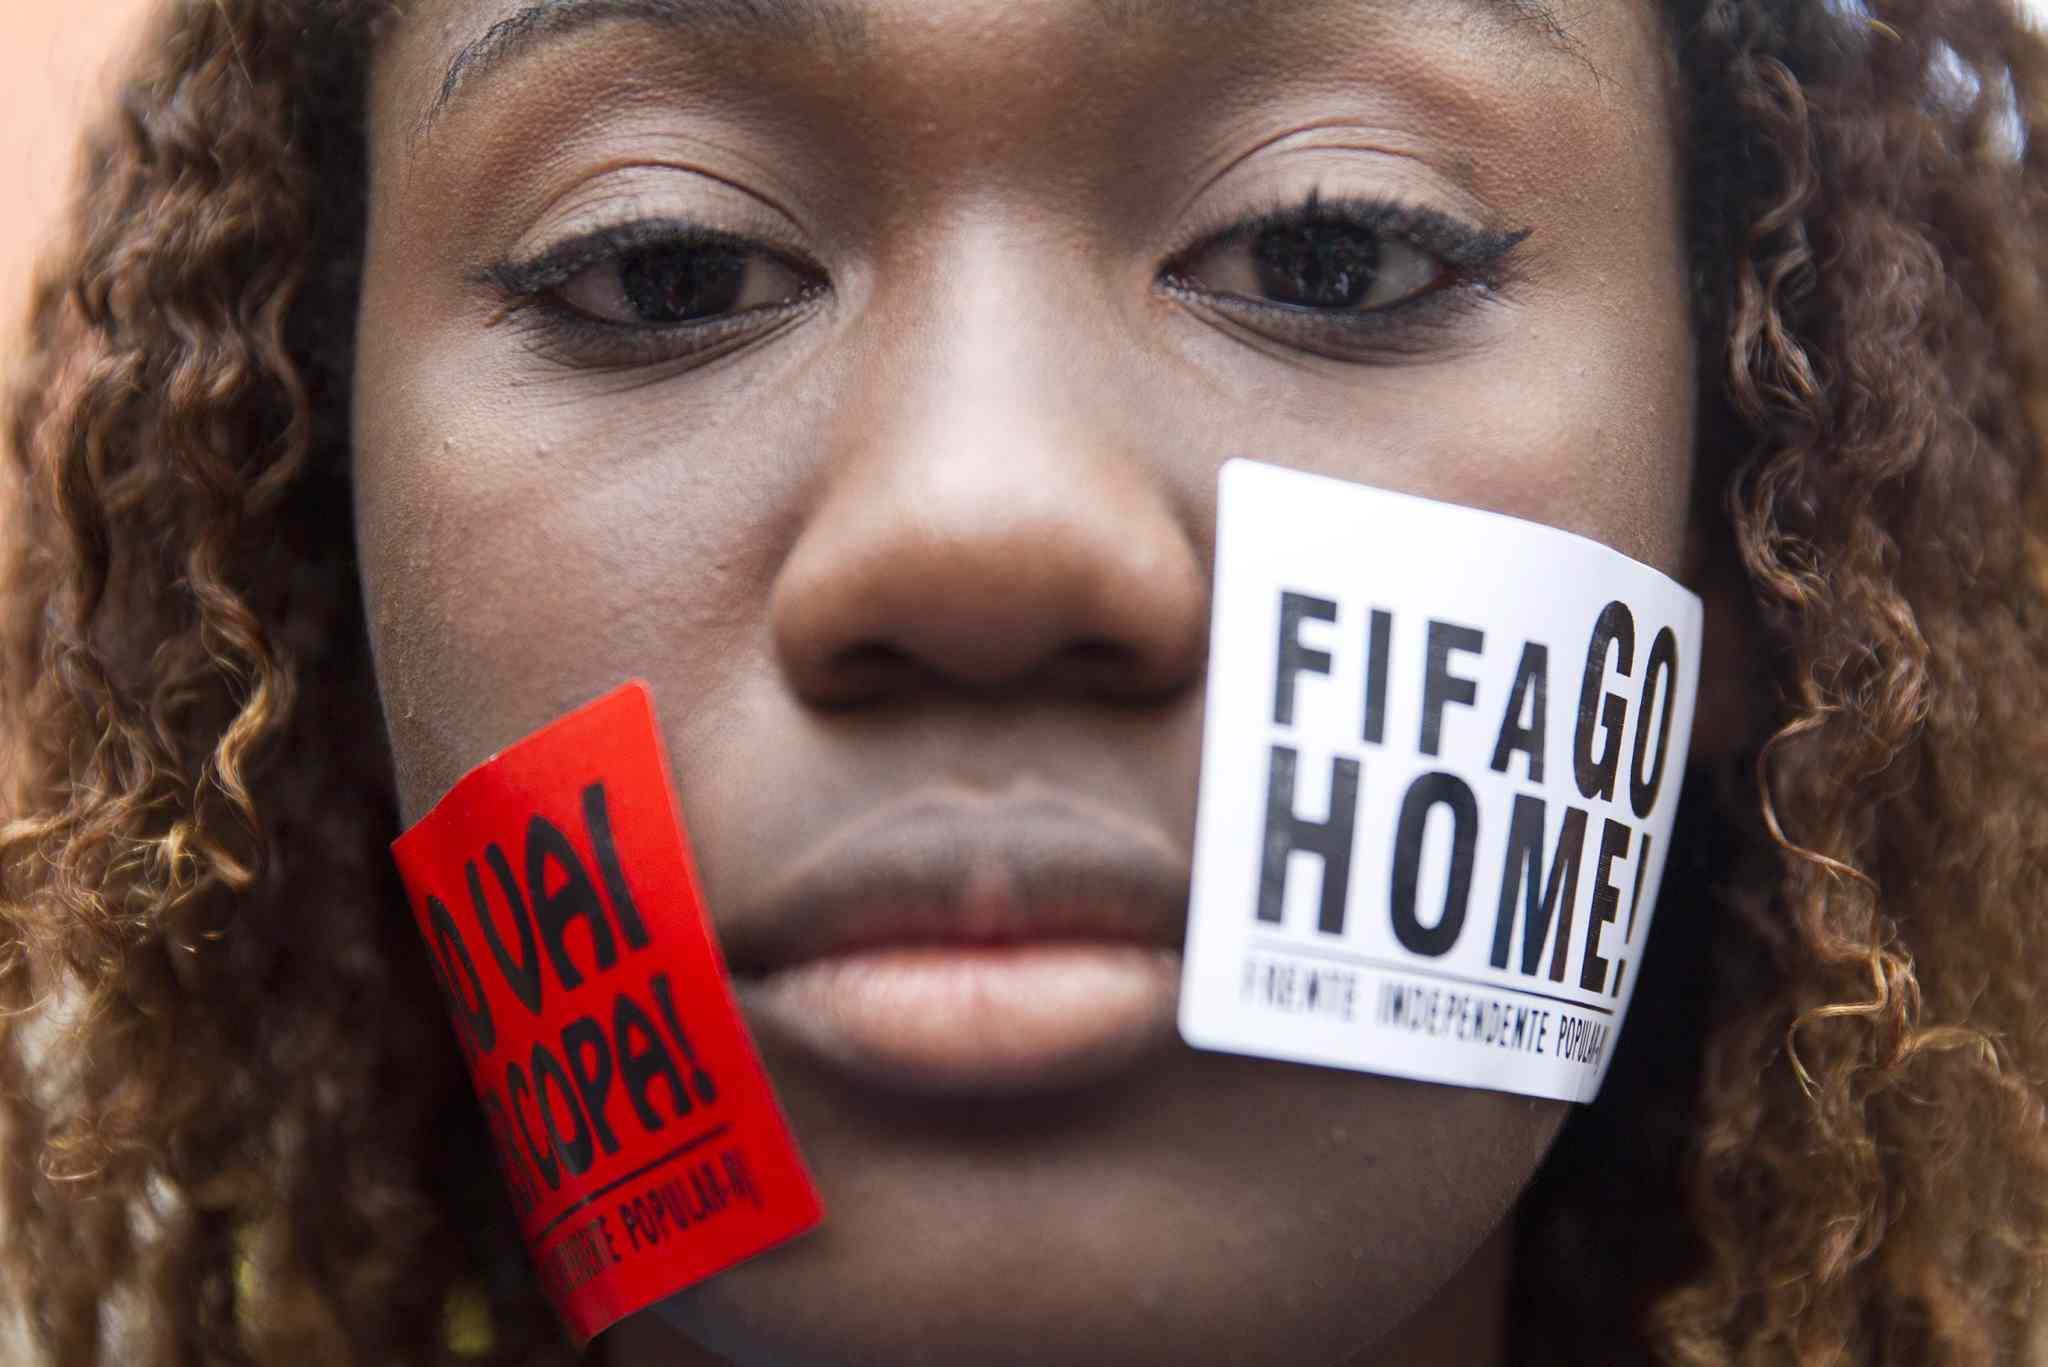 A woman protests with signs pasted on her face that read